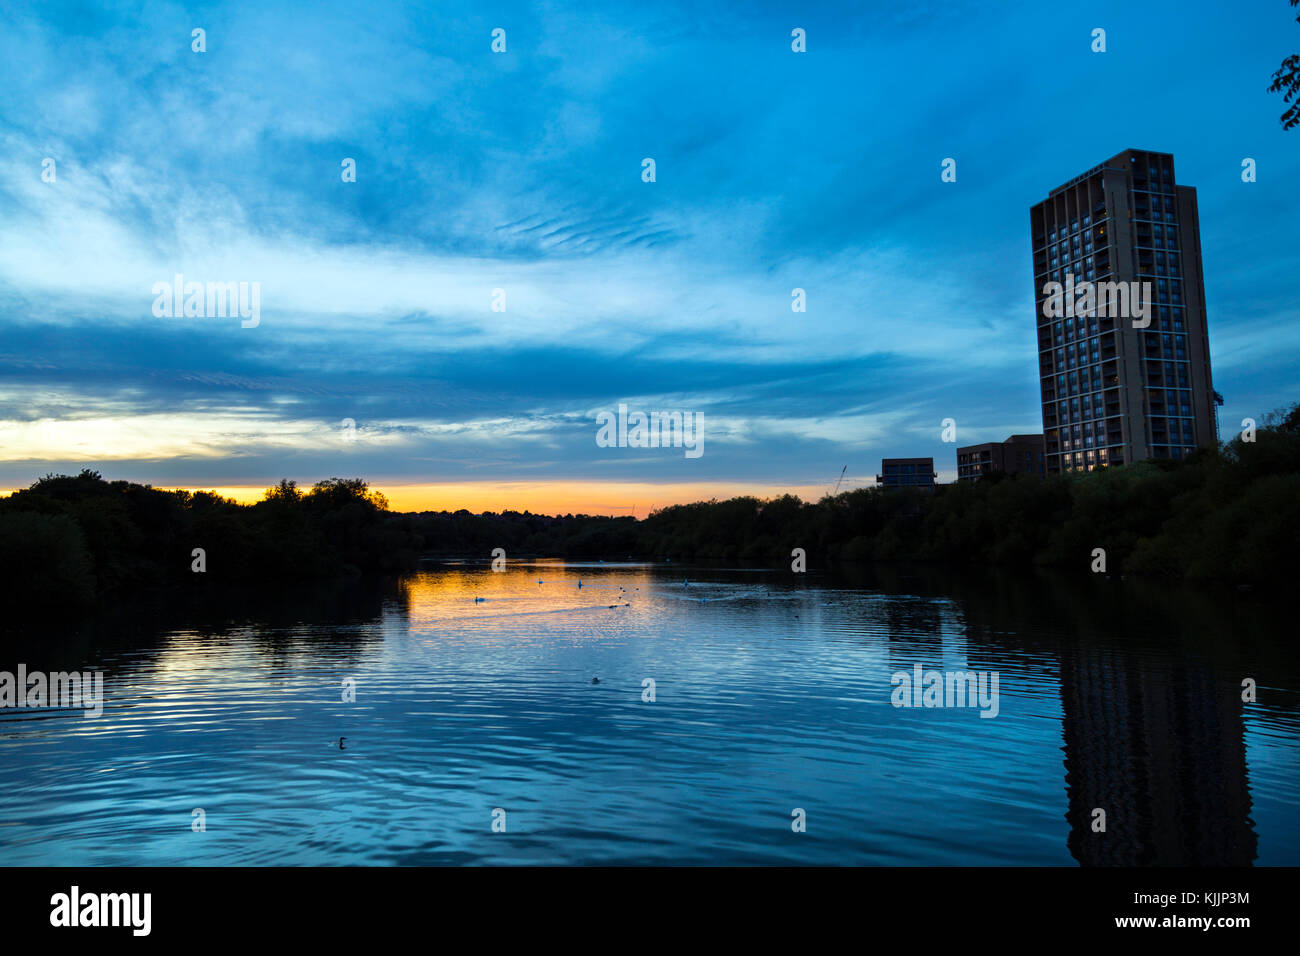 Tower Block (Hawfinch House) overlooking the Brent Reservoir, London, UK - Stock Image